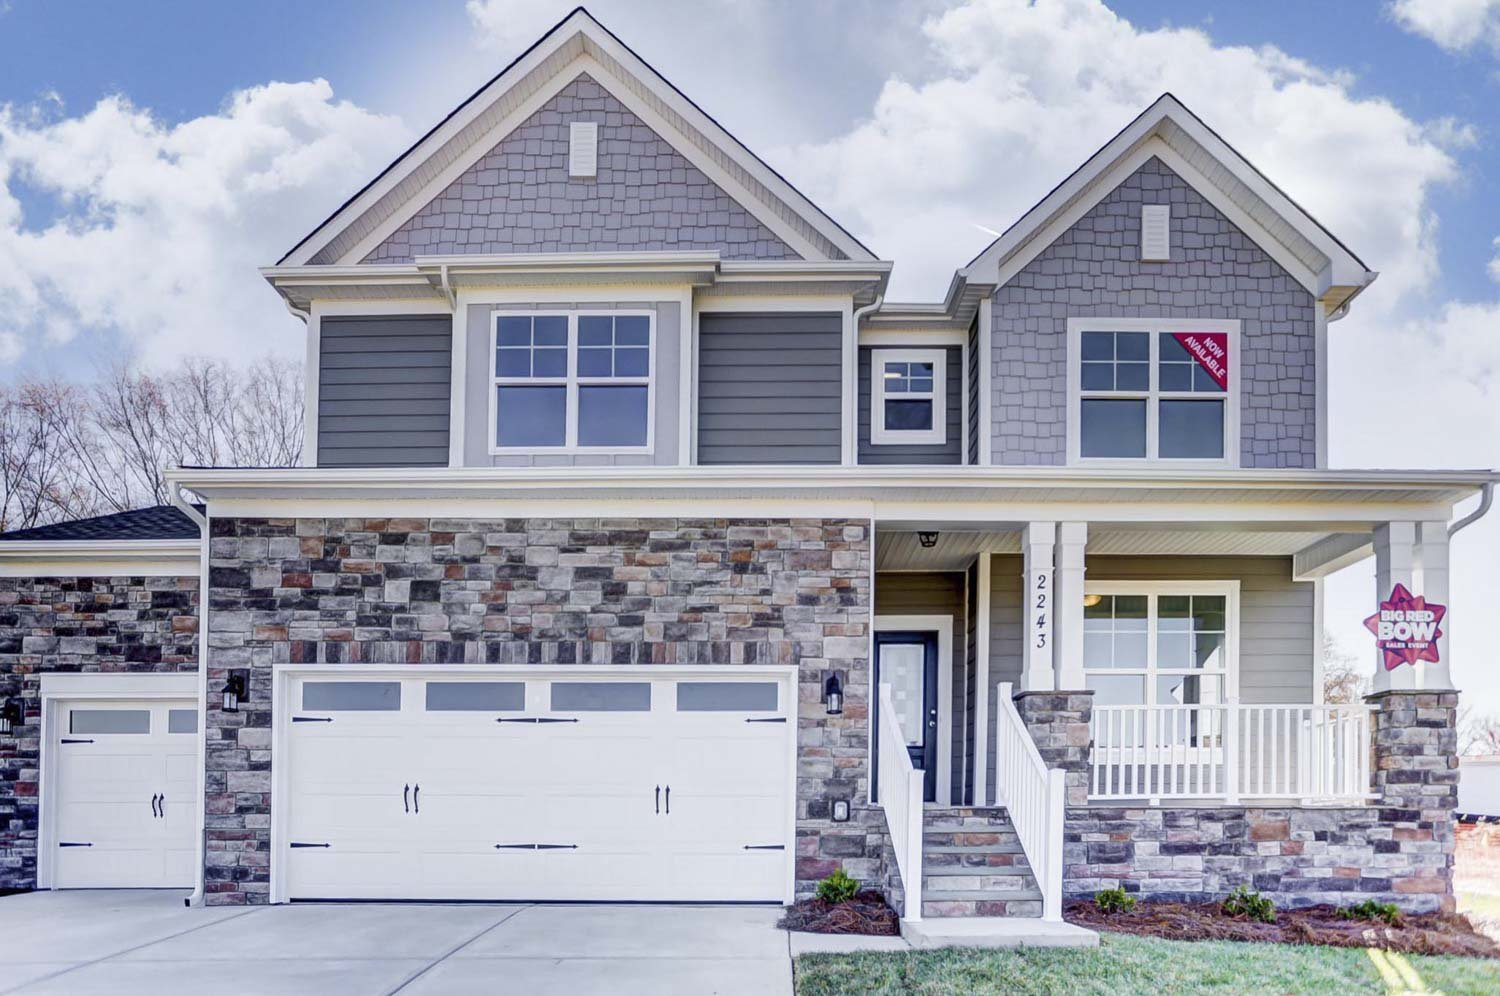 Eastwood Homes has move-in ready homes available